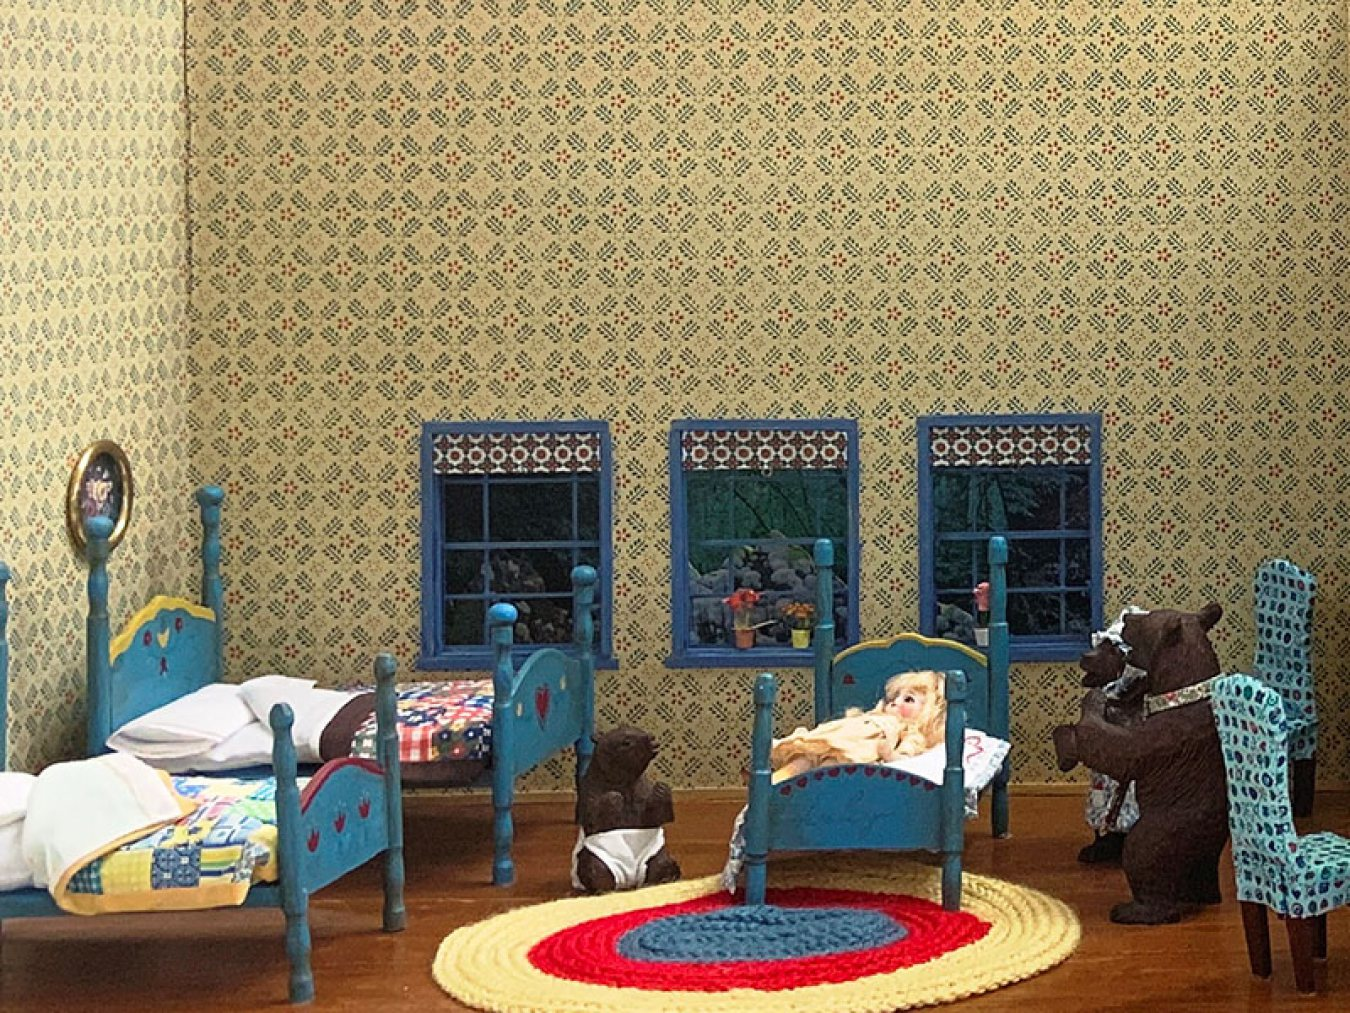 Rosenberg Library's Goldilocks and the Three Bears Diorama